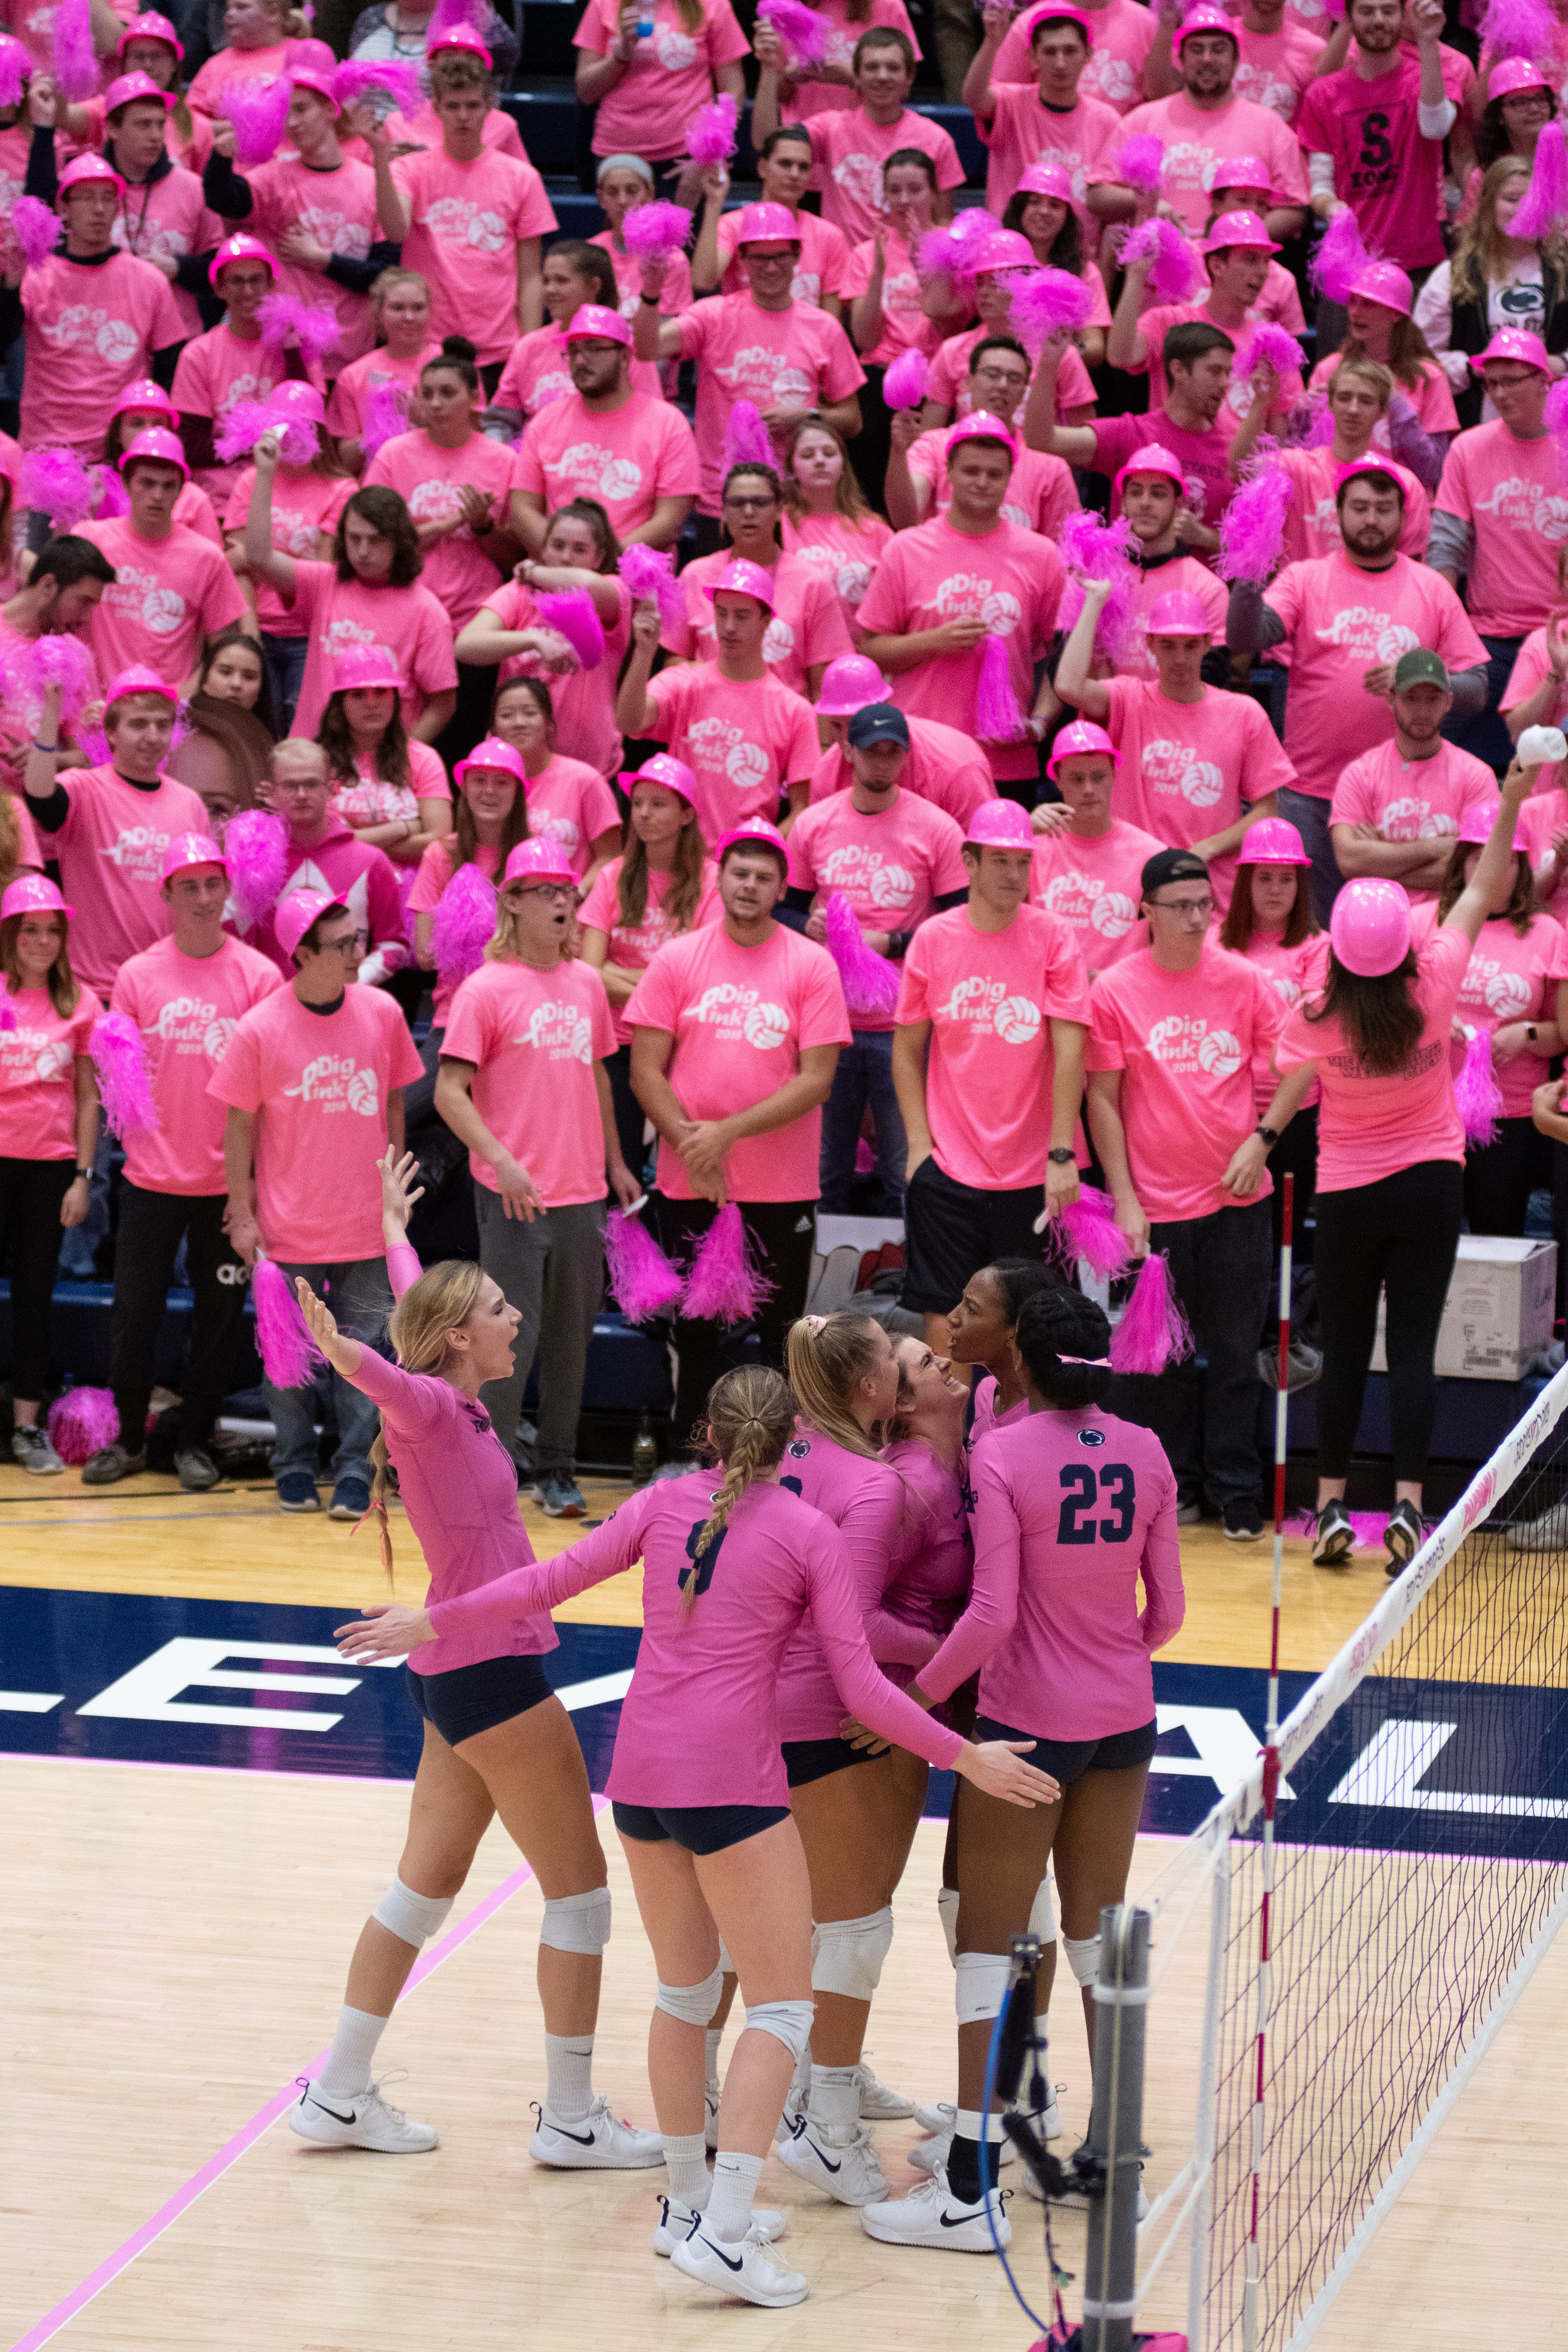 Penn State women's volleyball team celebrates after scoring during the game against Indiana at Rec Hall on Friday, Oct. 26, 2018. The Nittany Lions defeat Indiana in 3 sets. | Photo by: Noah Riffe